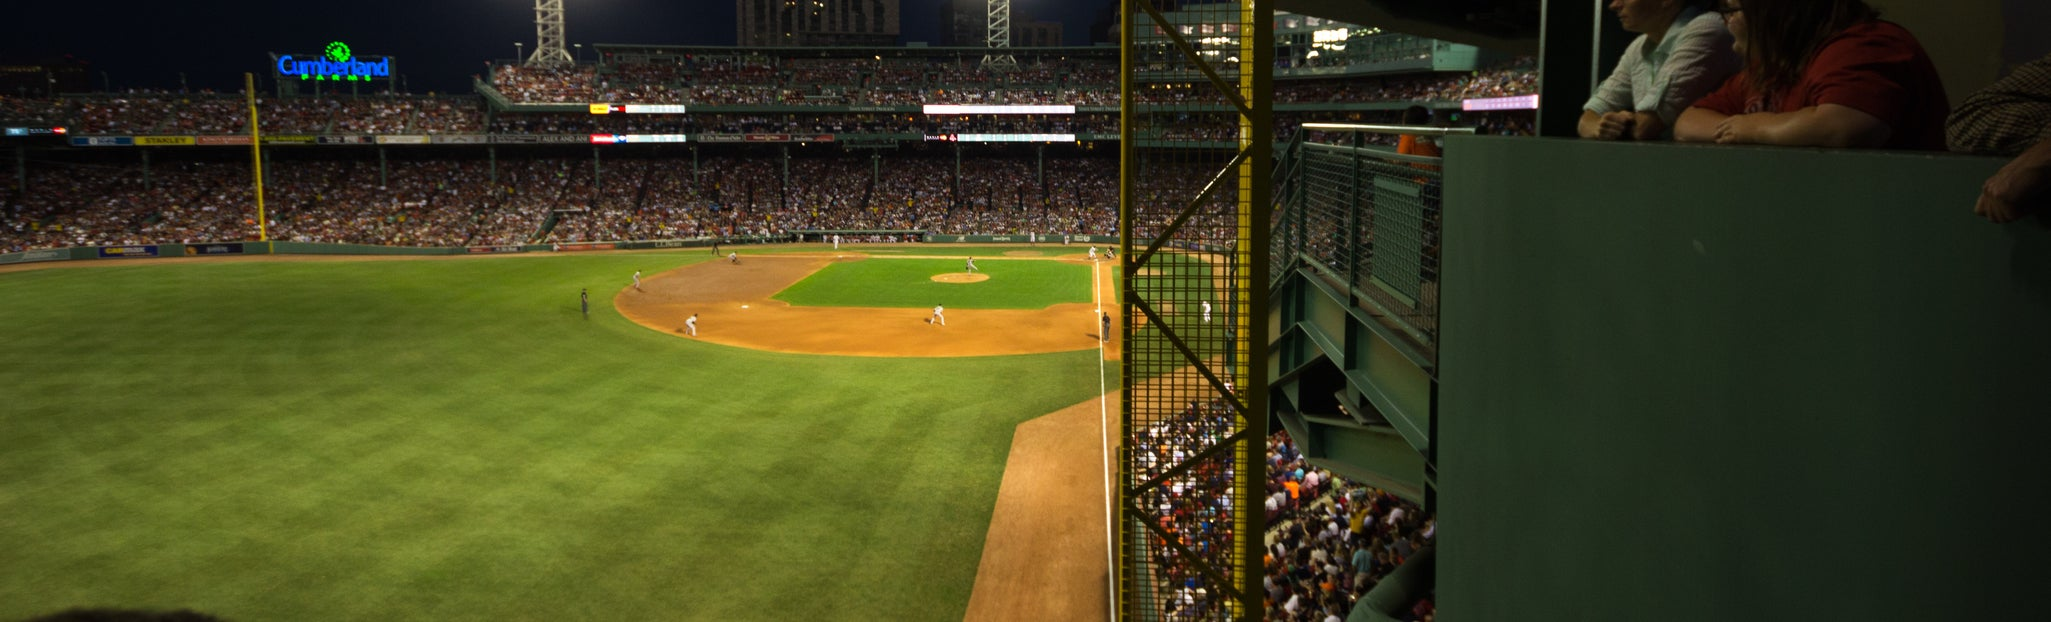 Seat view from Standing Room Only